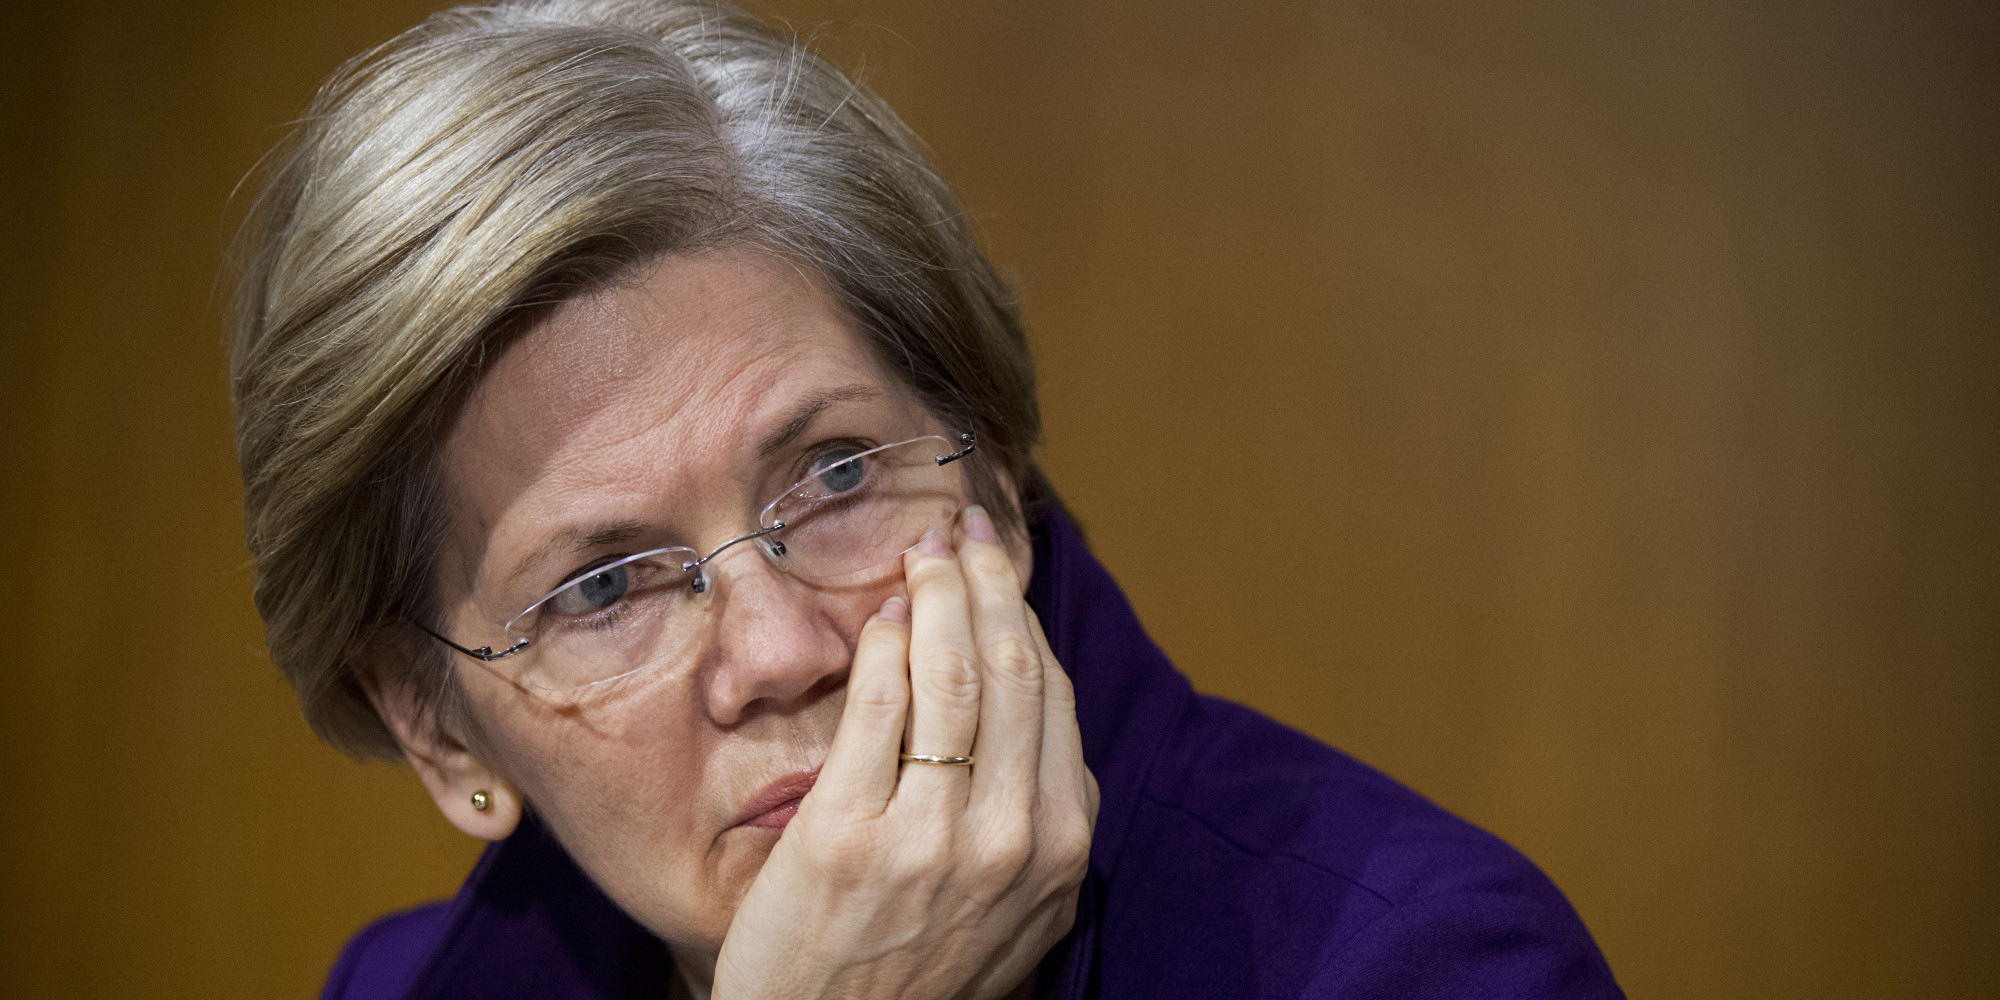 Hillary Clinton is targeting Elizabeth Warren to be her running mate